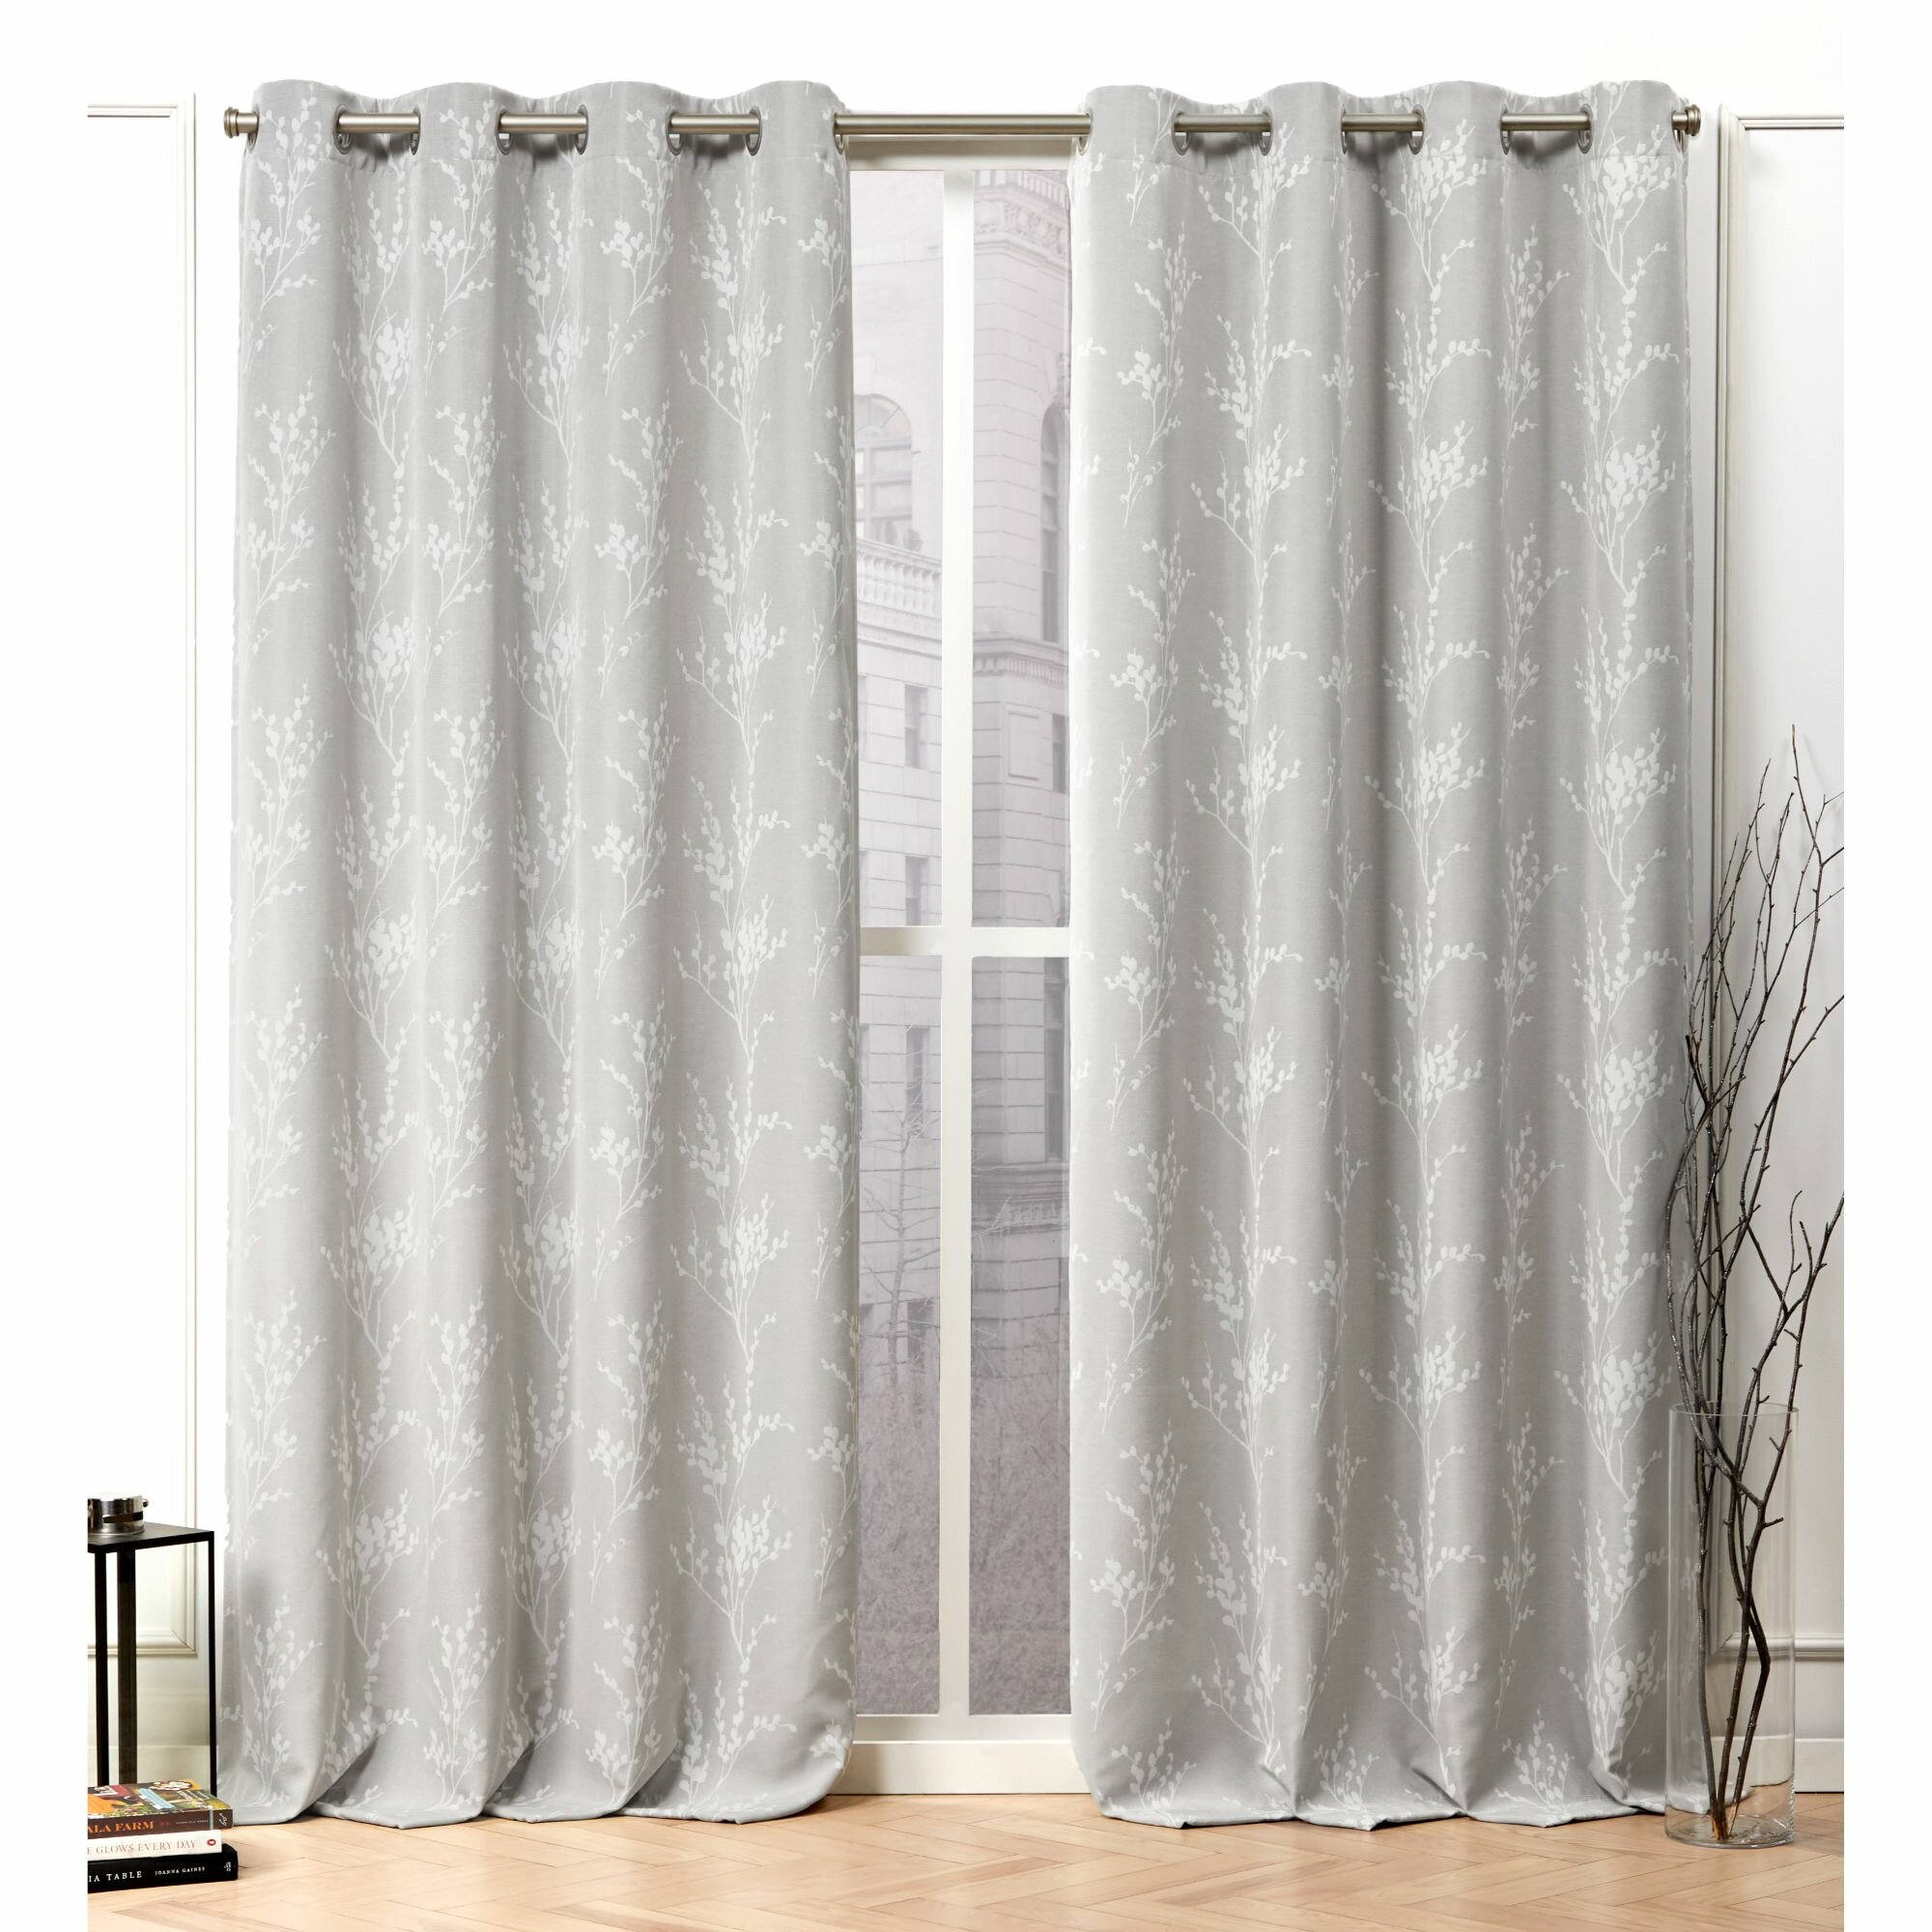 Decorate with Patterned Curtains for Sliding Glass Doors